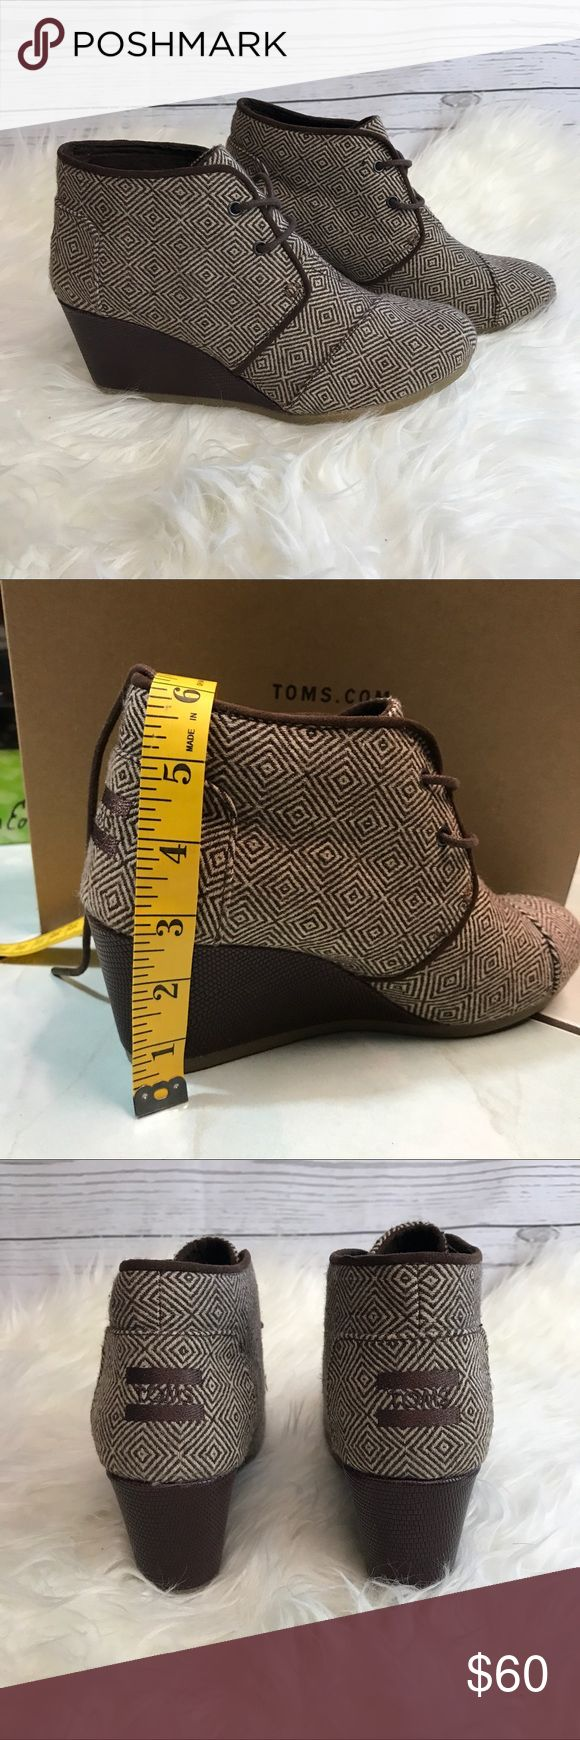 NEW TOMS Desert Wedge Booties - 7.5 Brand new without box. Super cute desert wedge boots in size 7.5. Toms Shoes Wedges